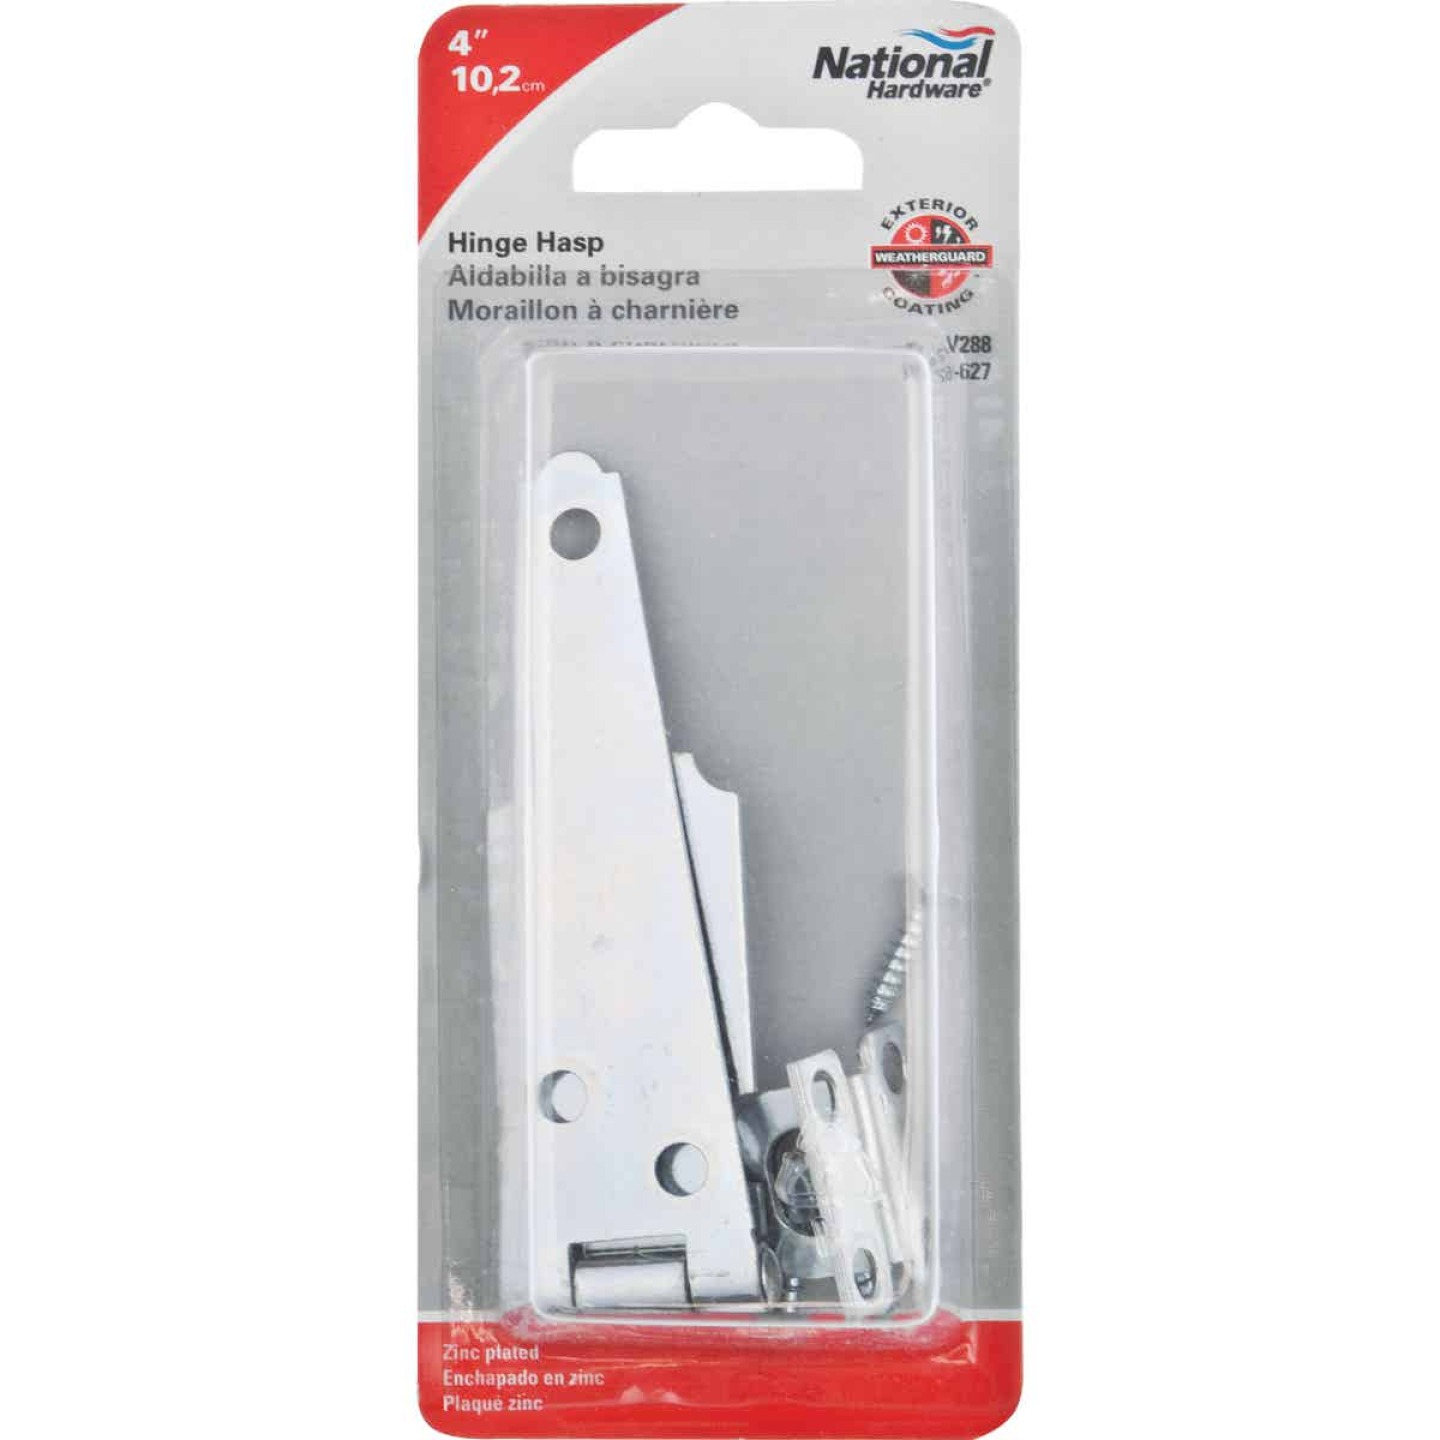 National 4 In. Steel Hinge Hasps Image 2